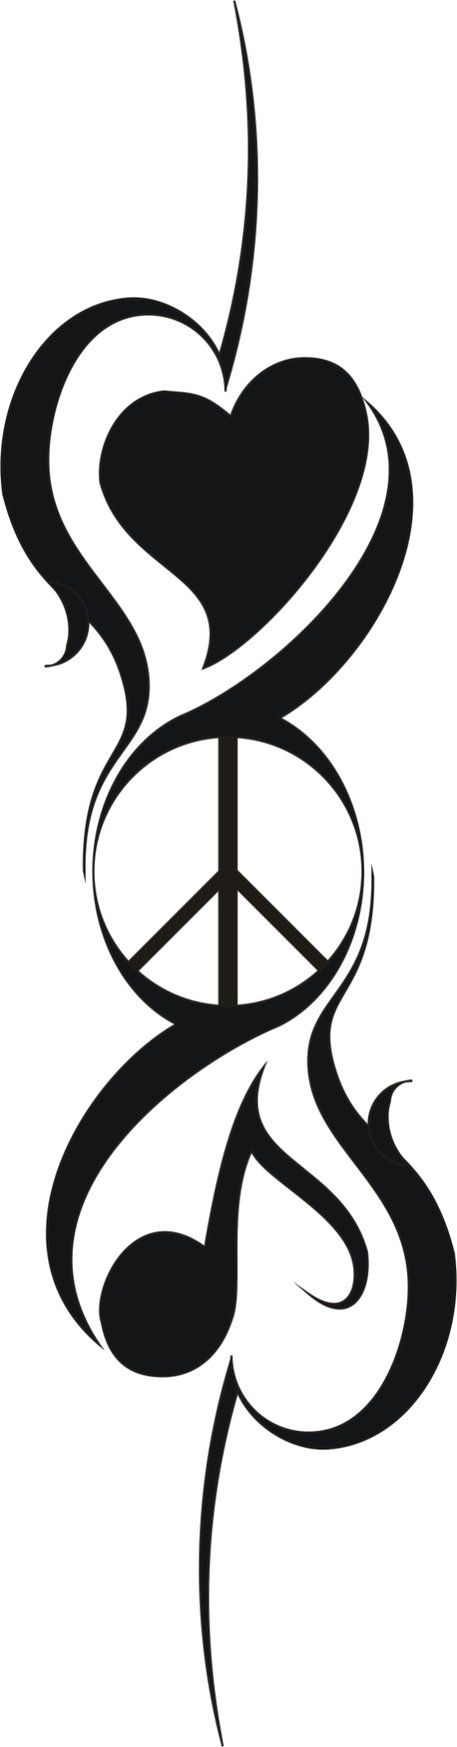 Peace love music dance cartoon clipart black and white freeuse peace love music tattoos gallery - Clip Art Library freeuse